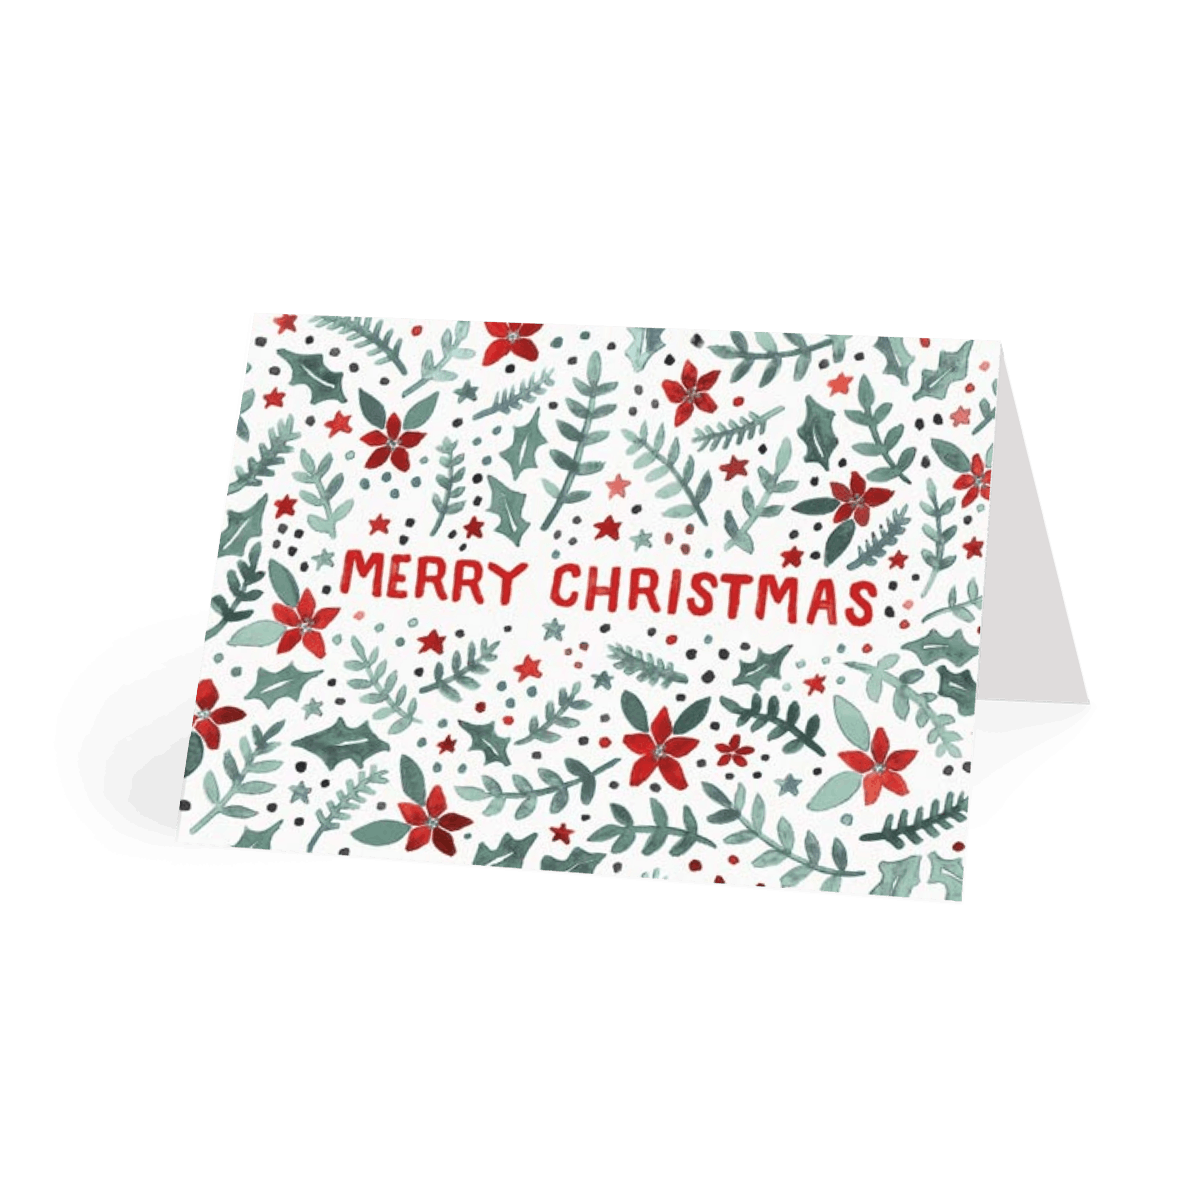 Https%3a%2f%2fwww.papier.com%2fproduct image%2f10024%2f14%2fpoinsettia scatter 2549 front 1537286669.png?ixlib=rb 1.1